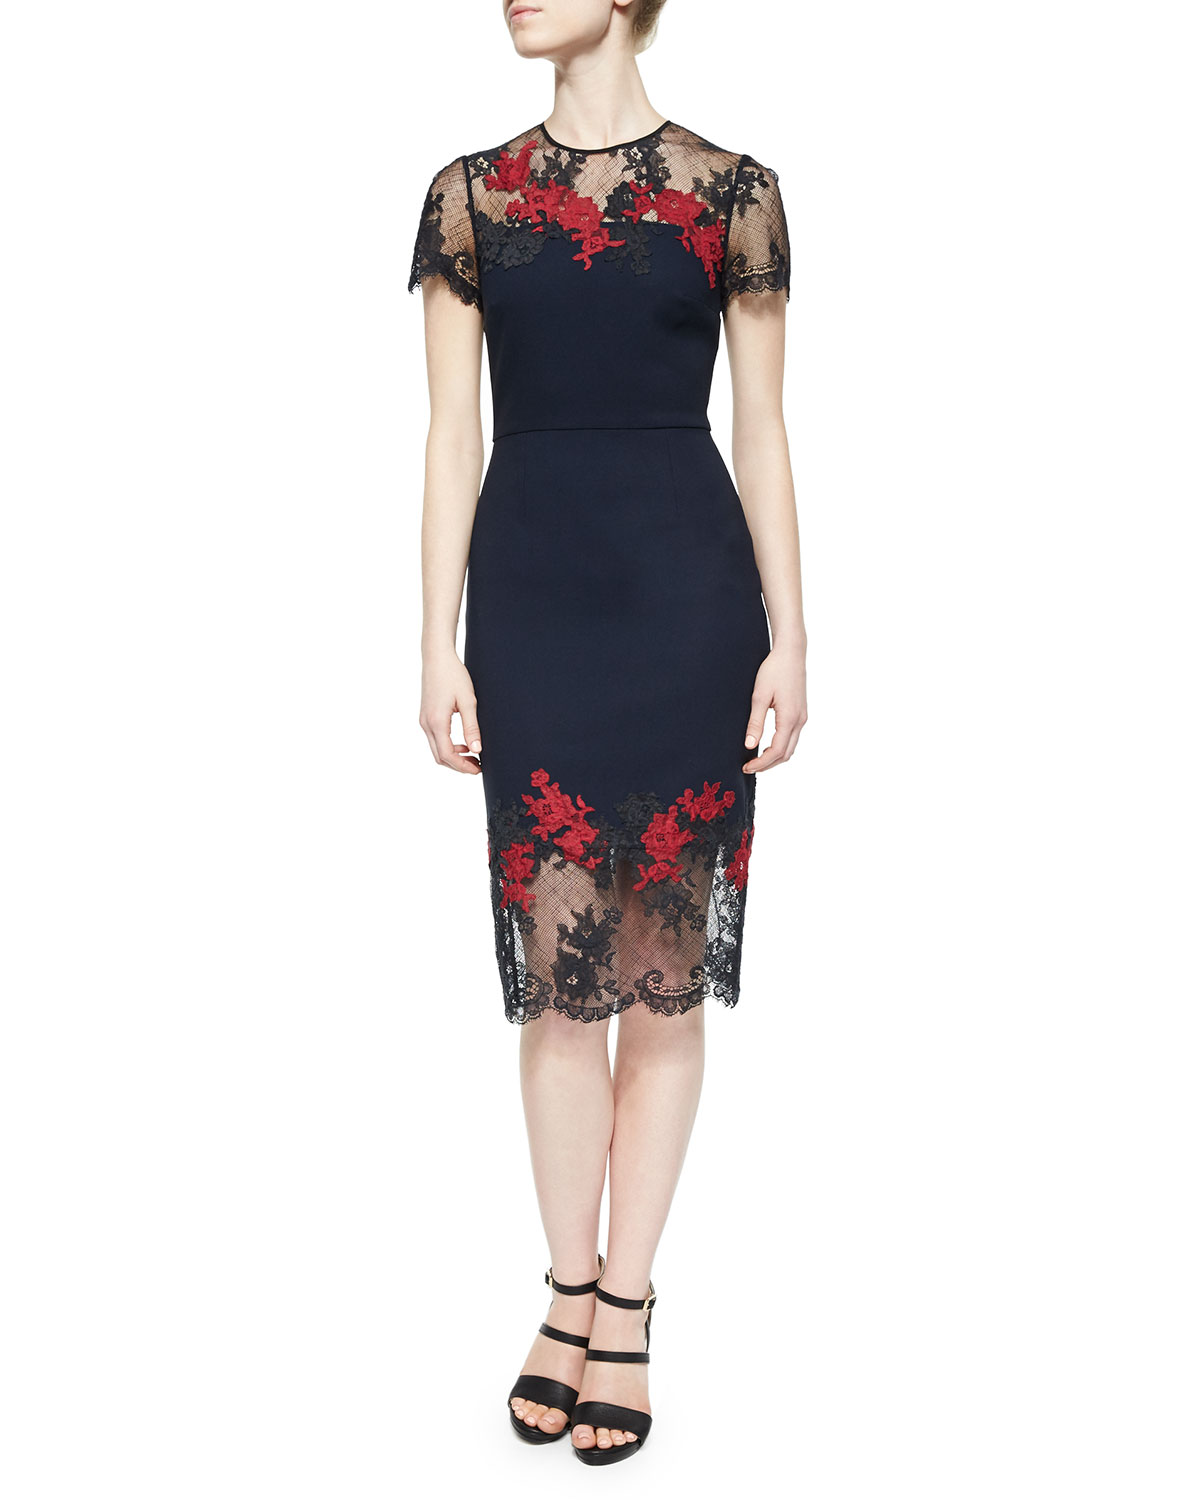 Keni Floral-Embroidered Lace-Trimmed Dress